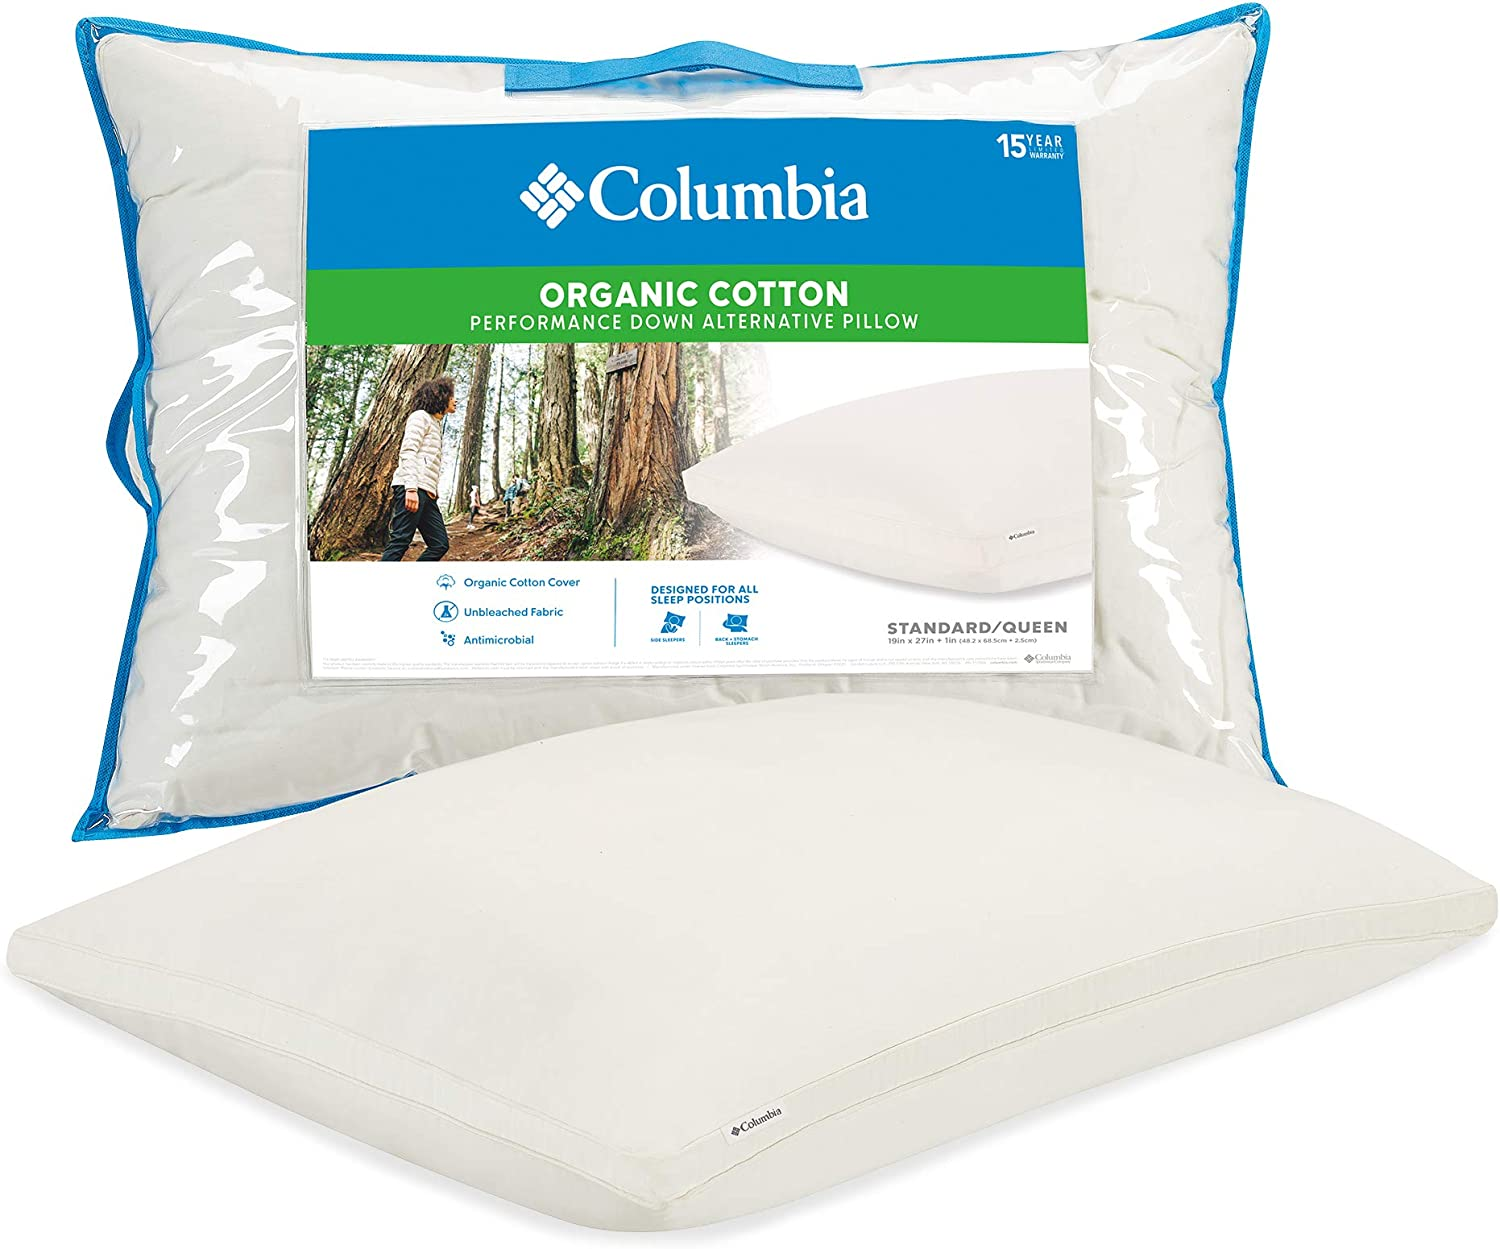 "Columbia Organic Cotton Cover Pillow with Performance Down Alternative Fill – 300TC Cotton Sateen Cover - 1"" Gusset for All Sleep Positions - Standard/Queen"